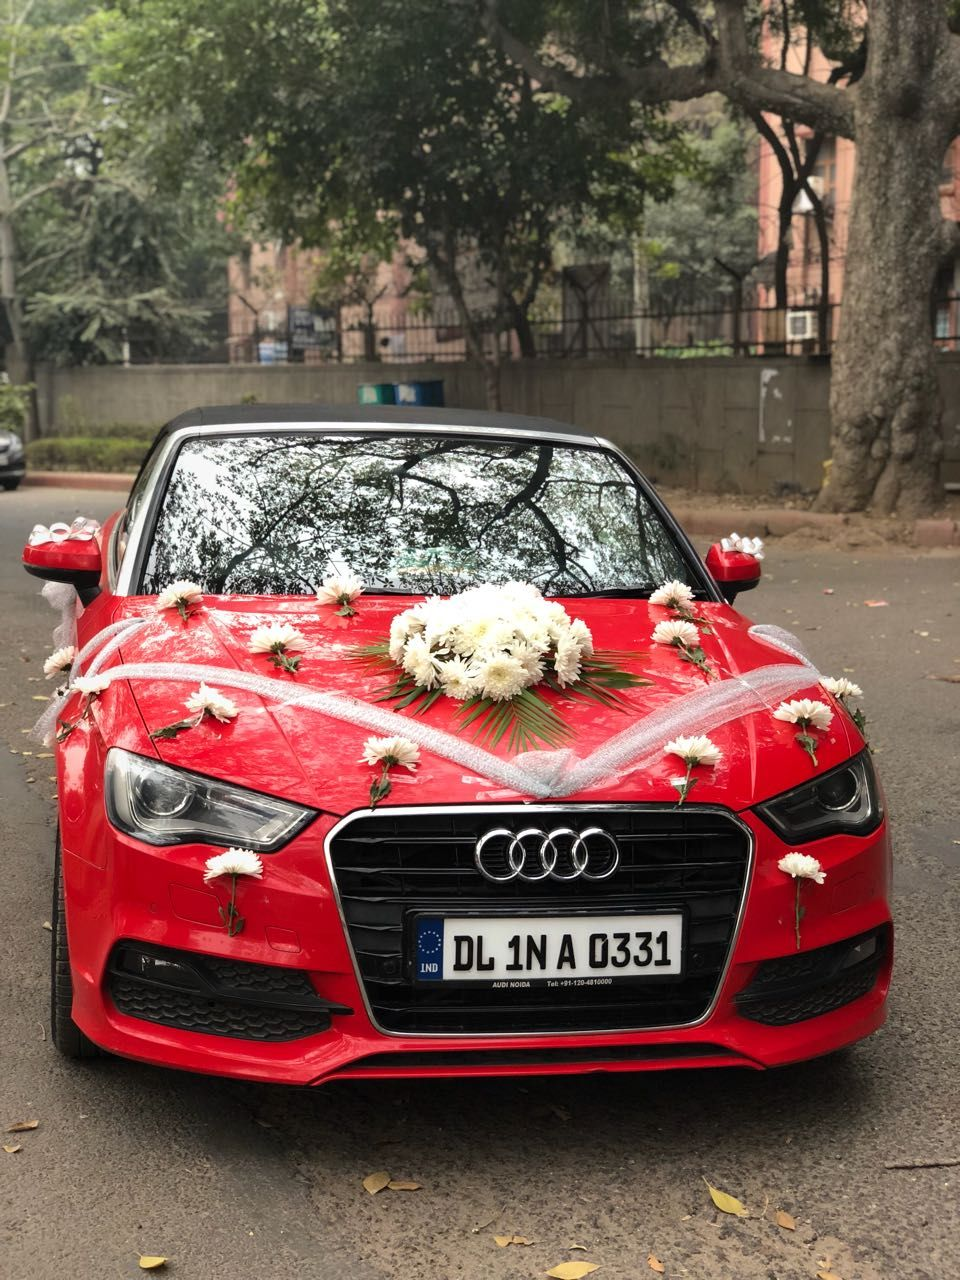 Wedding Car Delhi Is An Iso 9001 2015 Certified Car Rental Company And Recognized By Ministry Of T Car Rental Company Luxury Car Rental Wedding Car Decorations